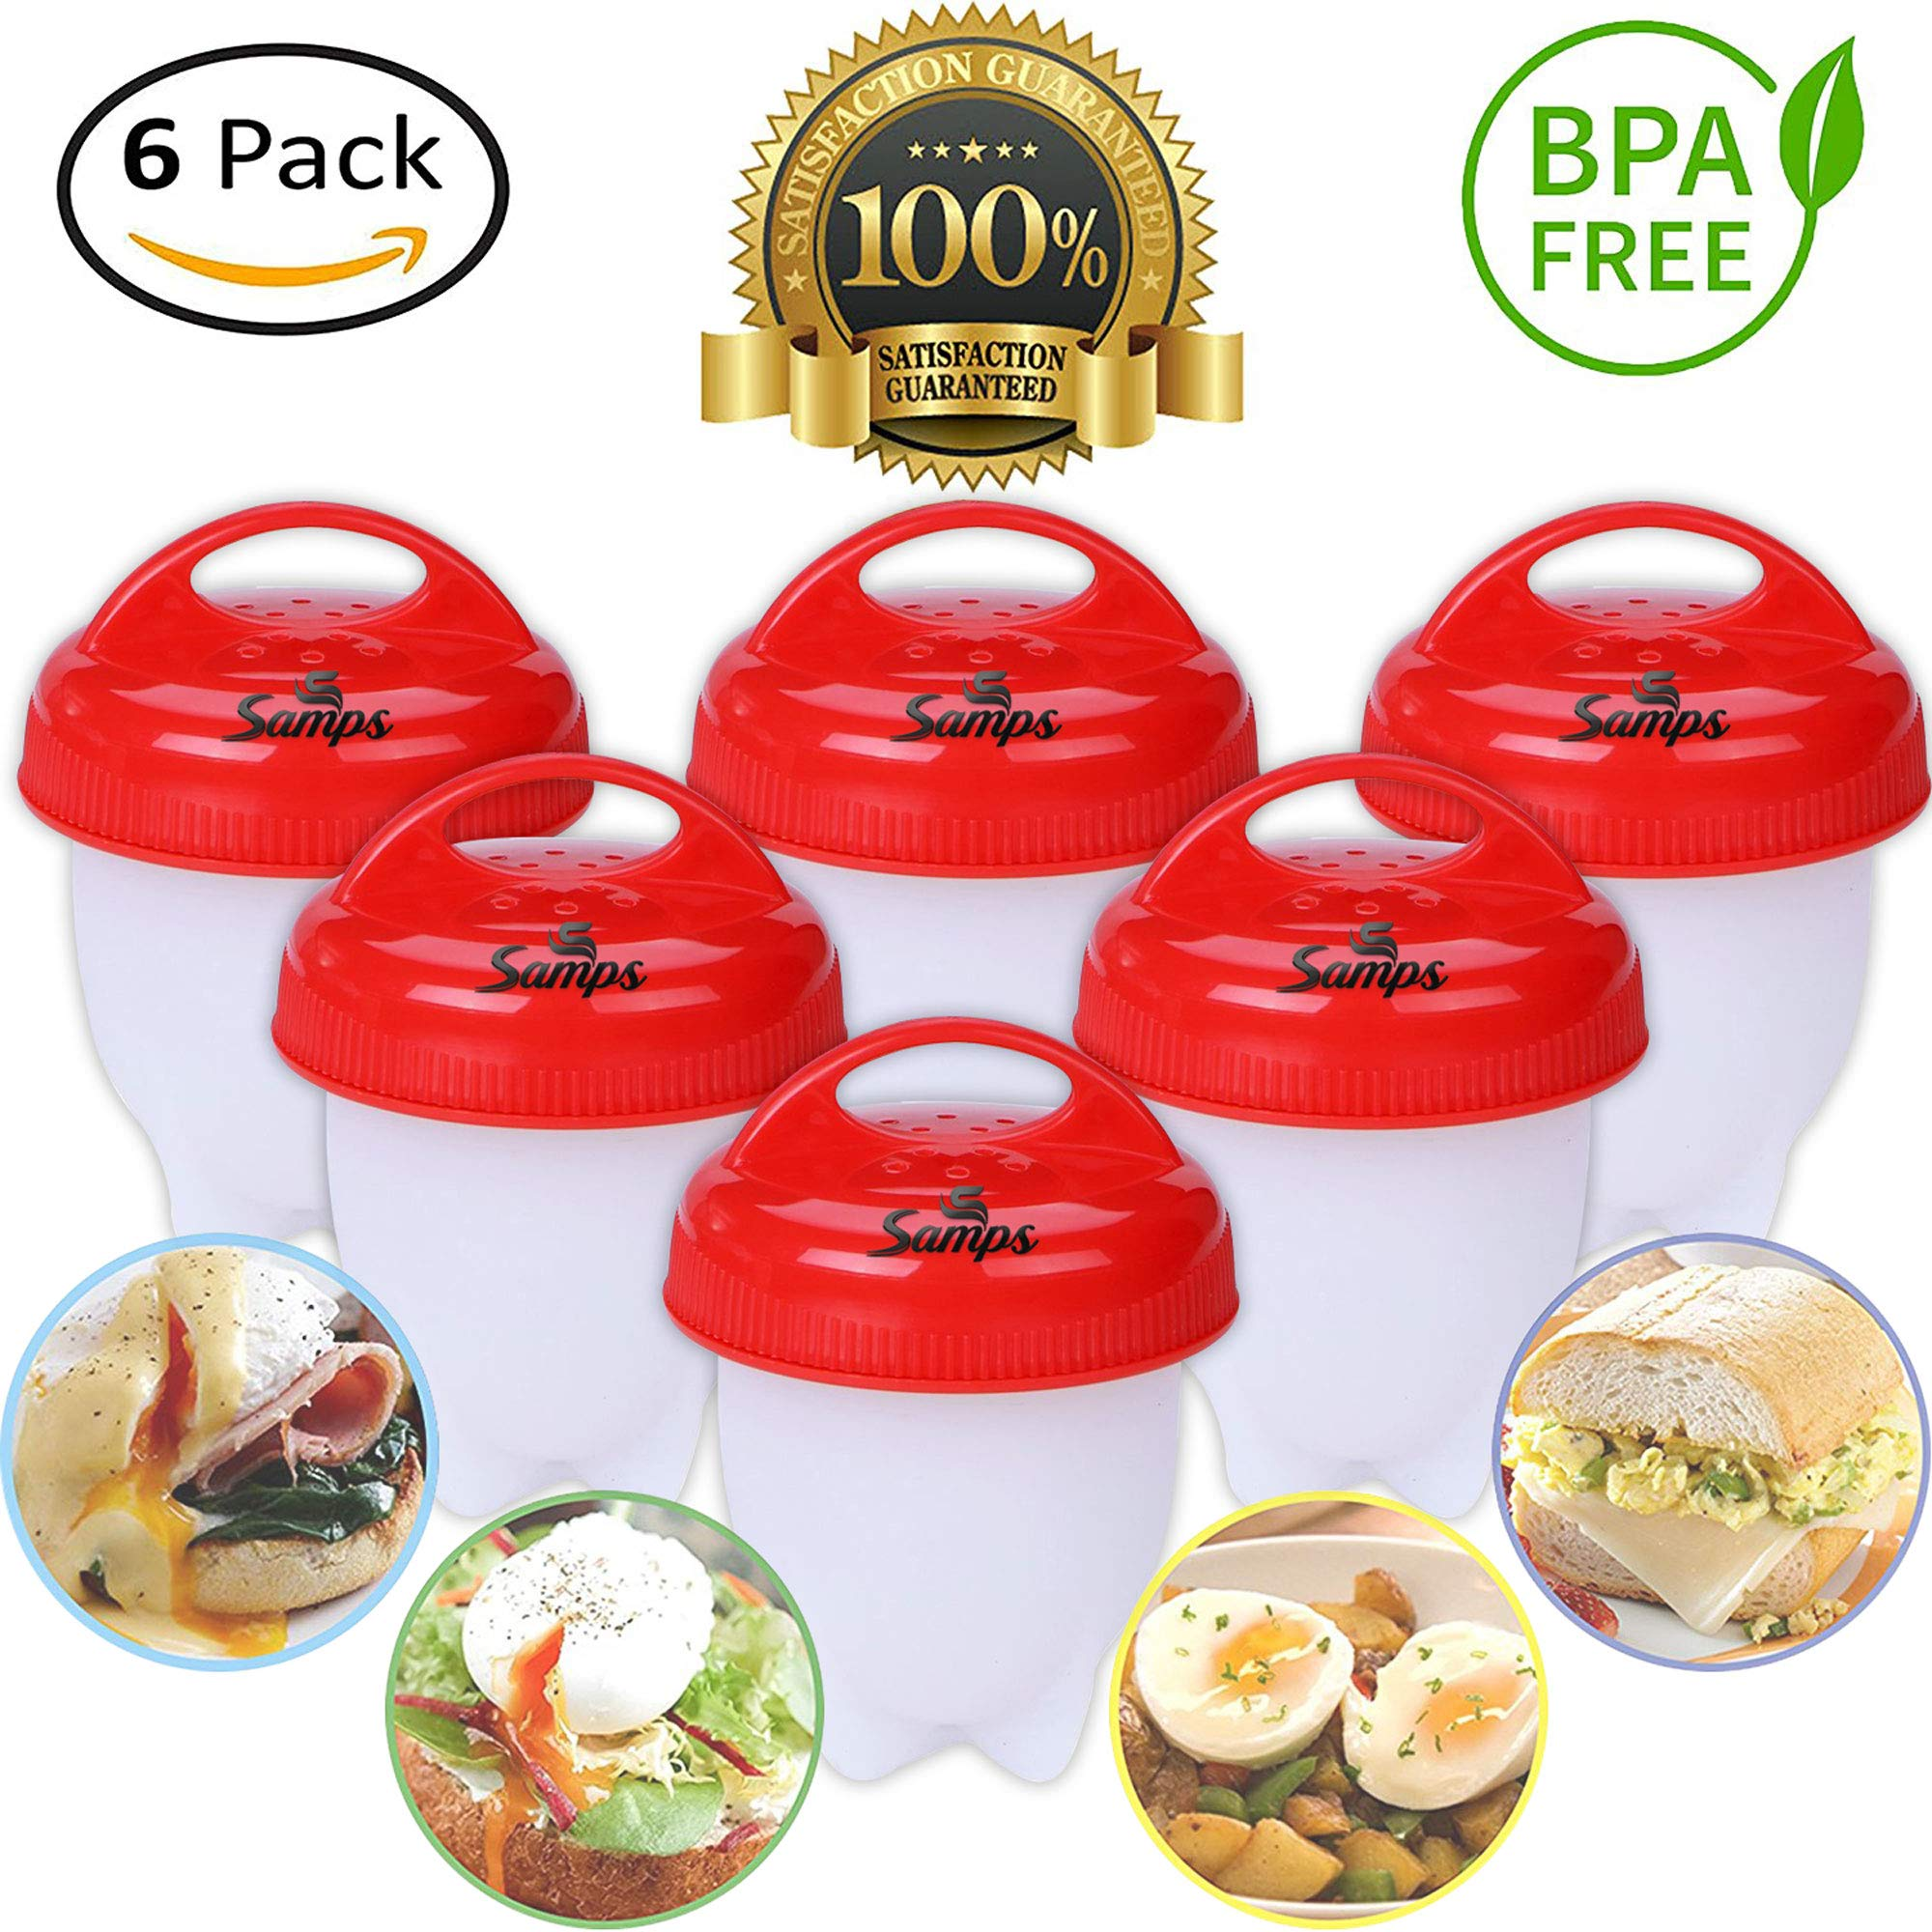 Hard Boiled Egg Cooker Prime without the Shell, Non-Stick Silicone, Soft Maker Egg Poacher, 6 PACKS